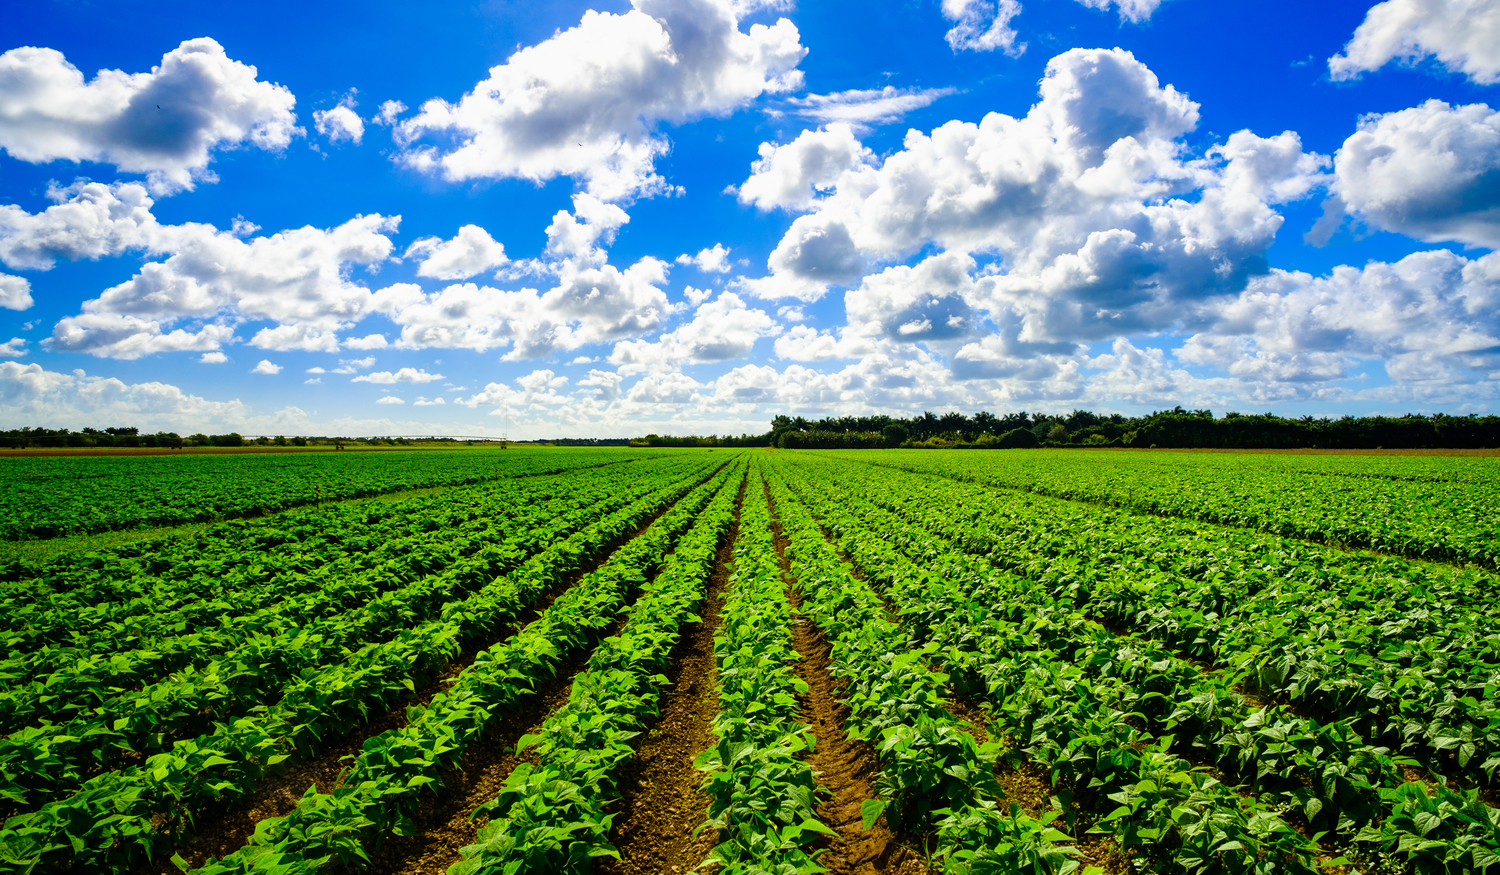 Agricultural field under sunny sky